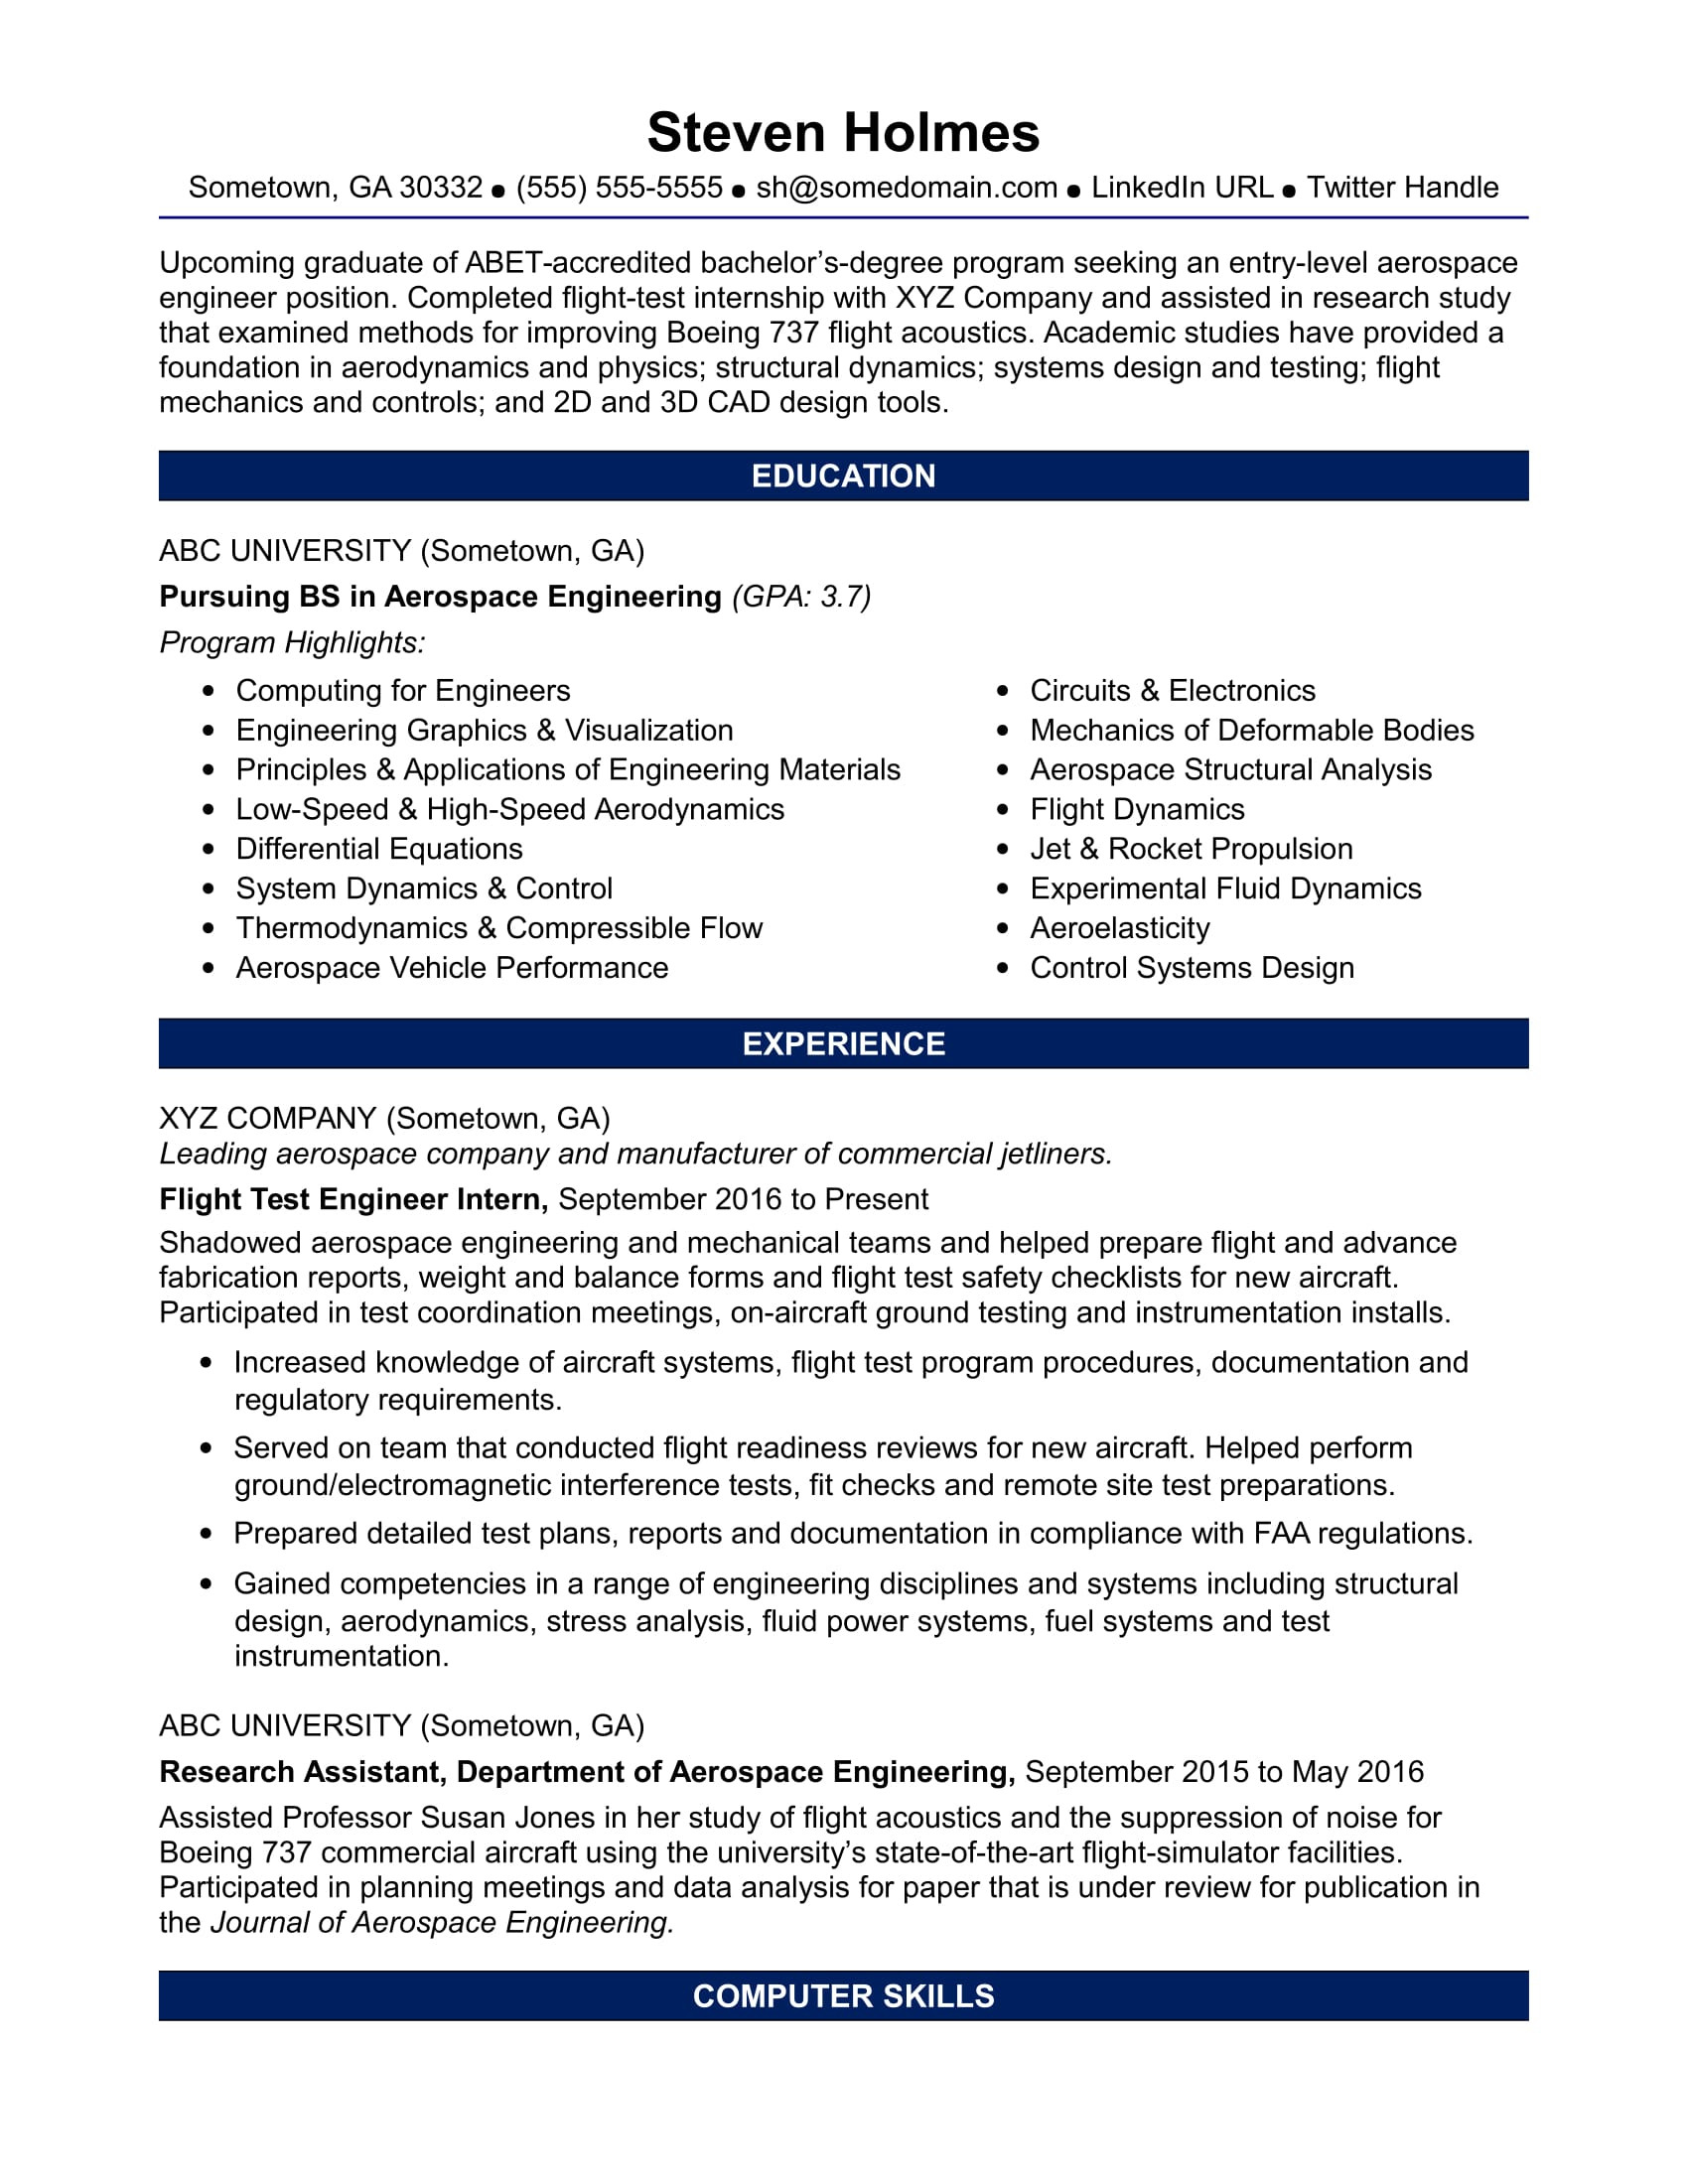 sample resume for an entry level aerospace engineer monster control systems quantitative Resume Control Systems Engineer Resume Sample